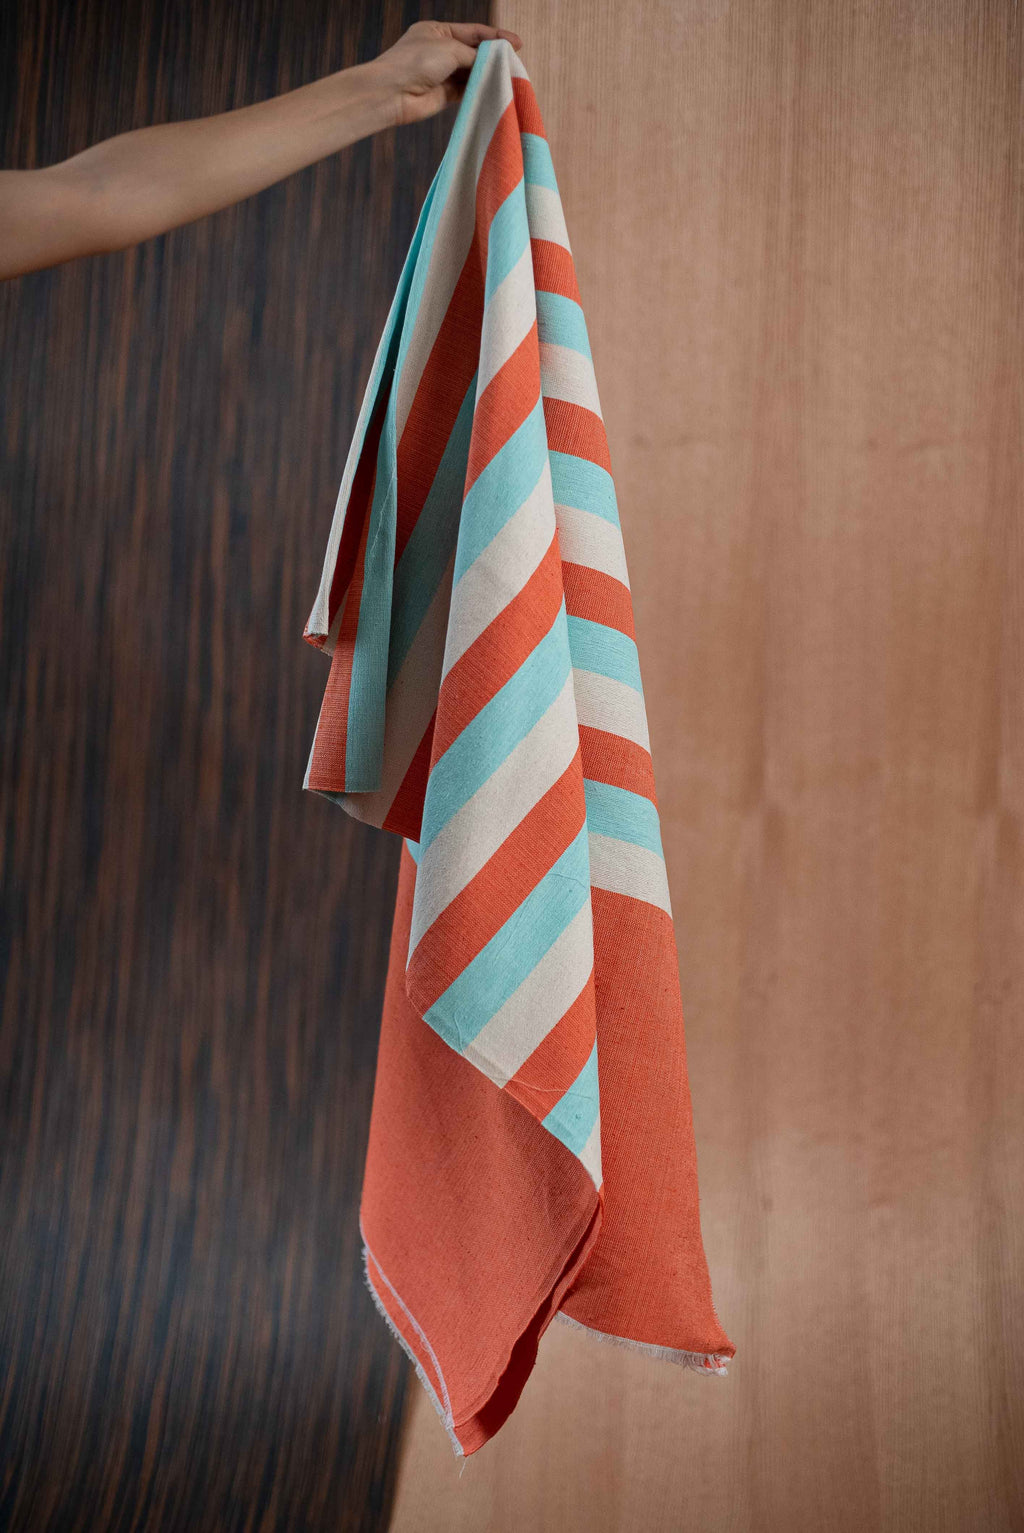 Orange blue towel - TOCO MADERA - Handcraft shoe from Mexico - Handmade shoe